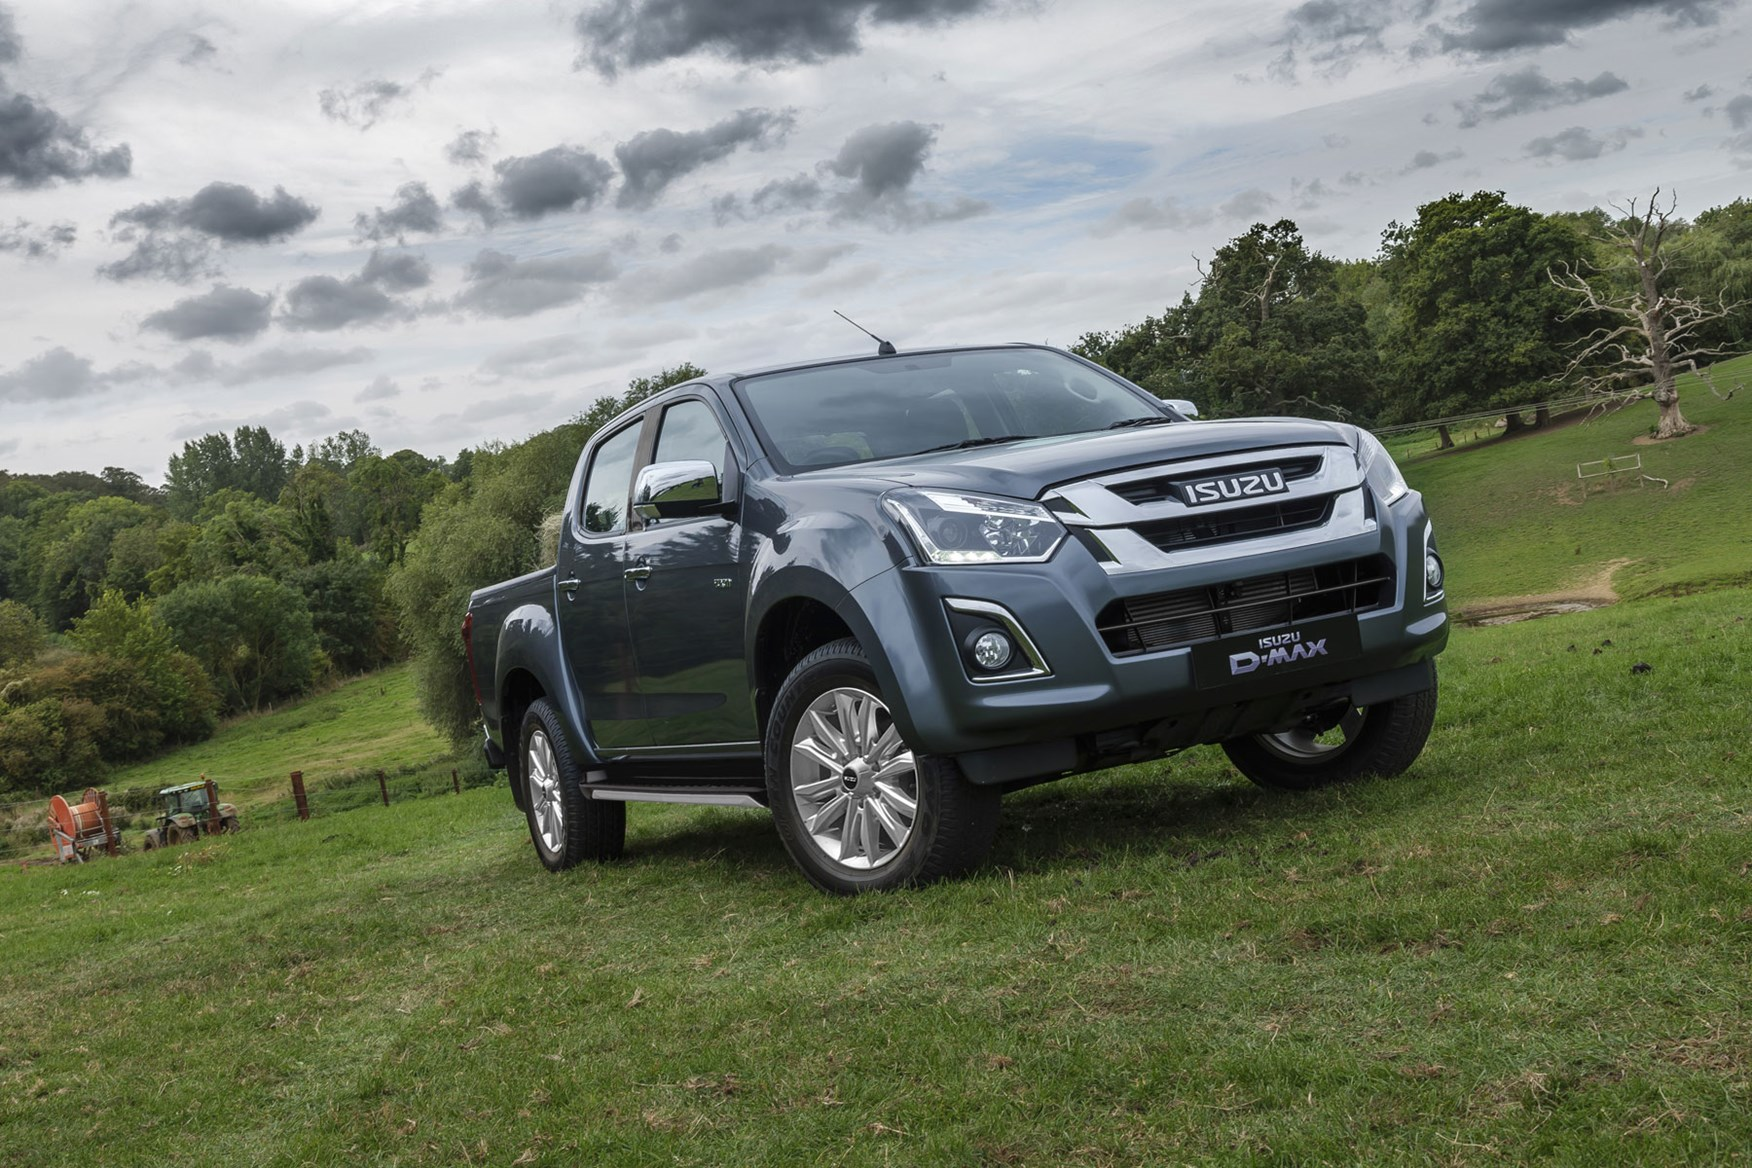 Isuzu D-Max Yukon review - grey, front view, parked in field